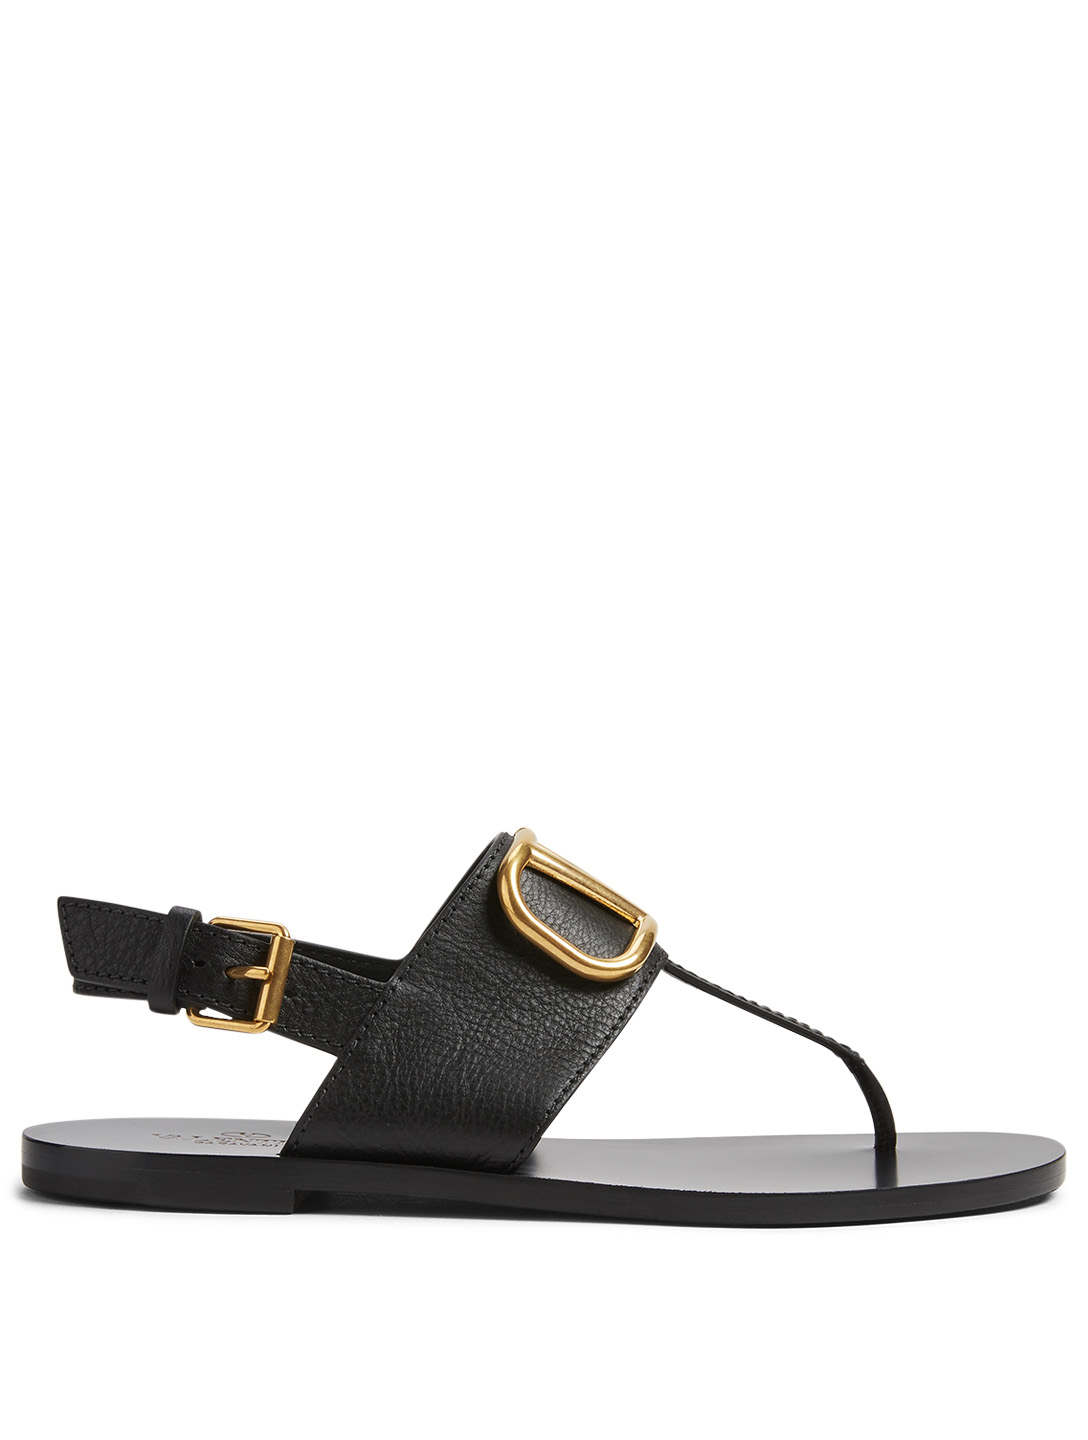 VALENTINO GARAVANI Leather Slingback Thong Sandals With V-Logo Collections Black